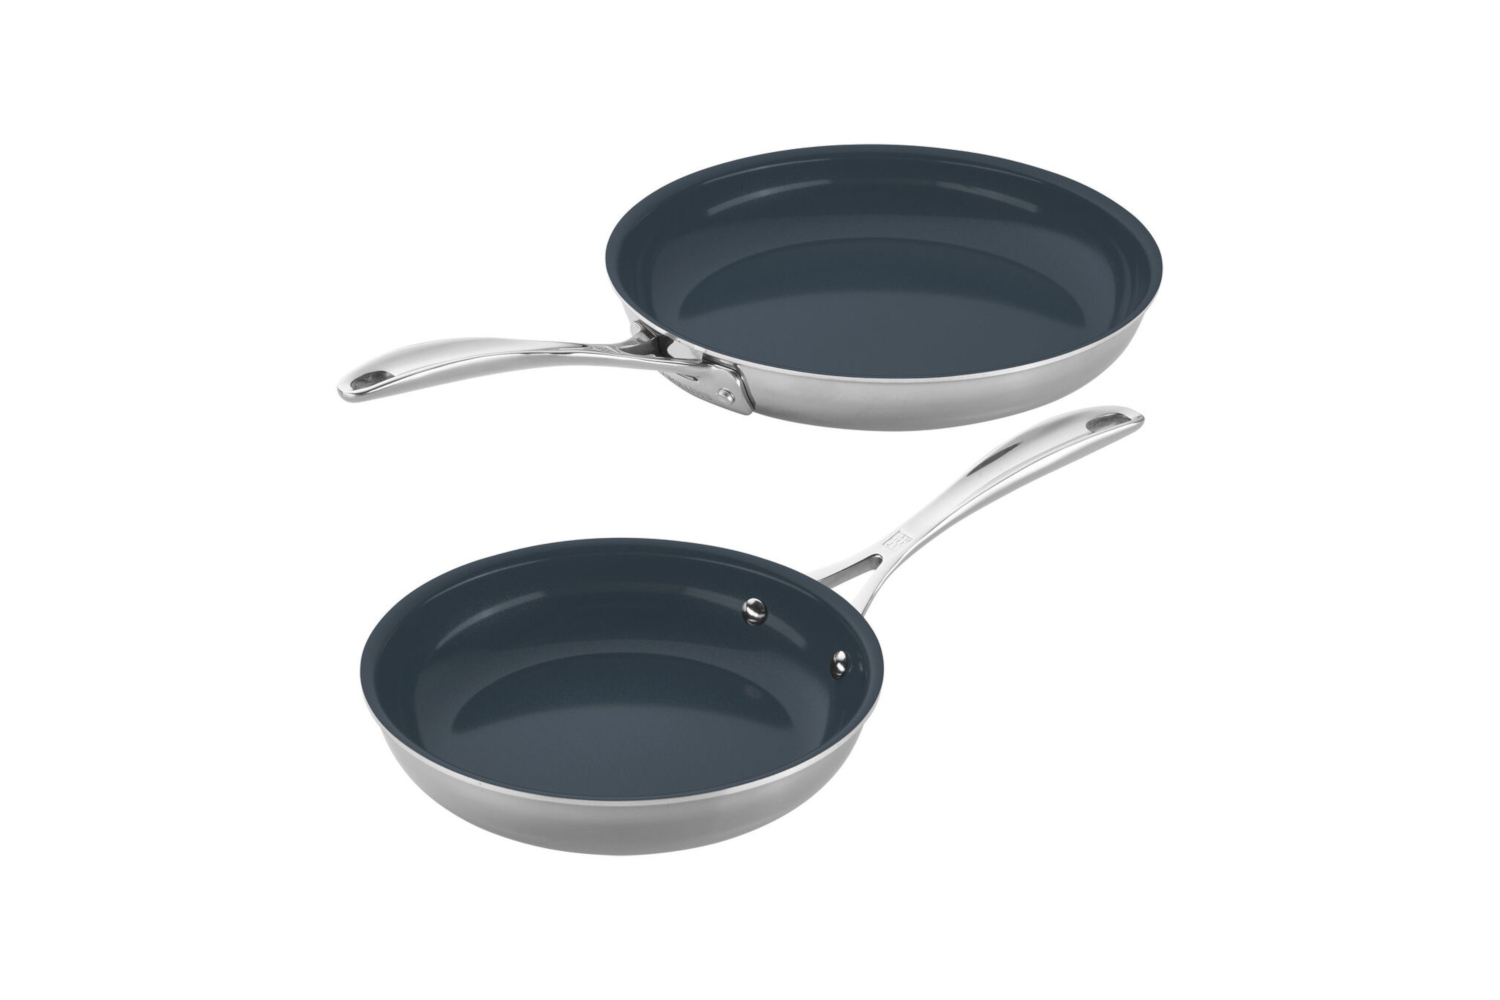 Zwilling CFX Stainless Steel 2 Piece Ceramic Nonstick Fry Pan Set